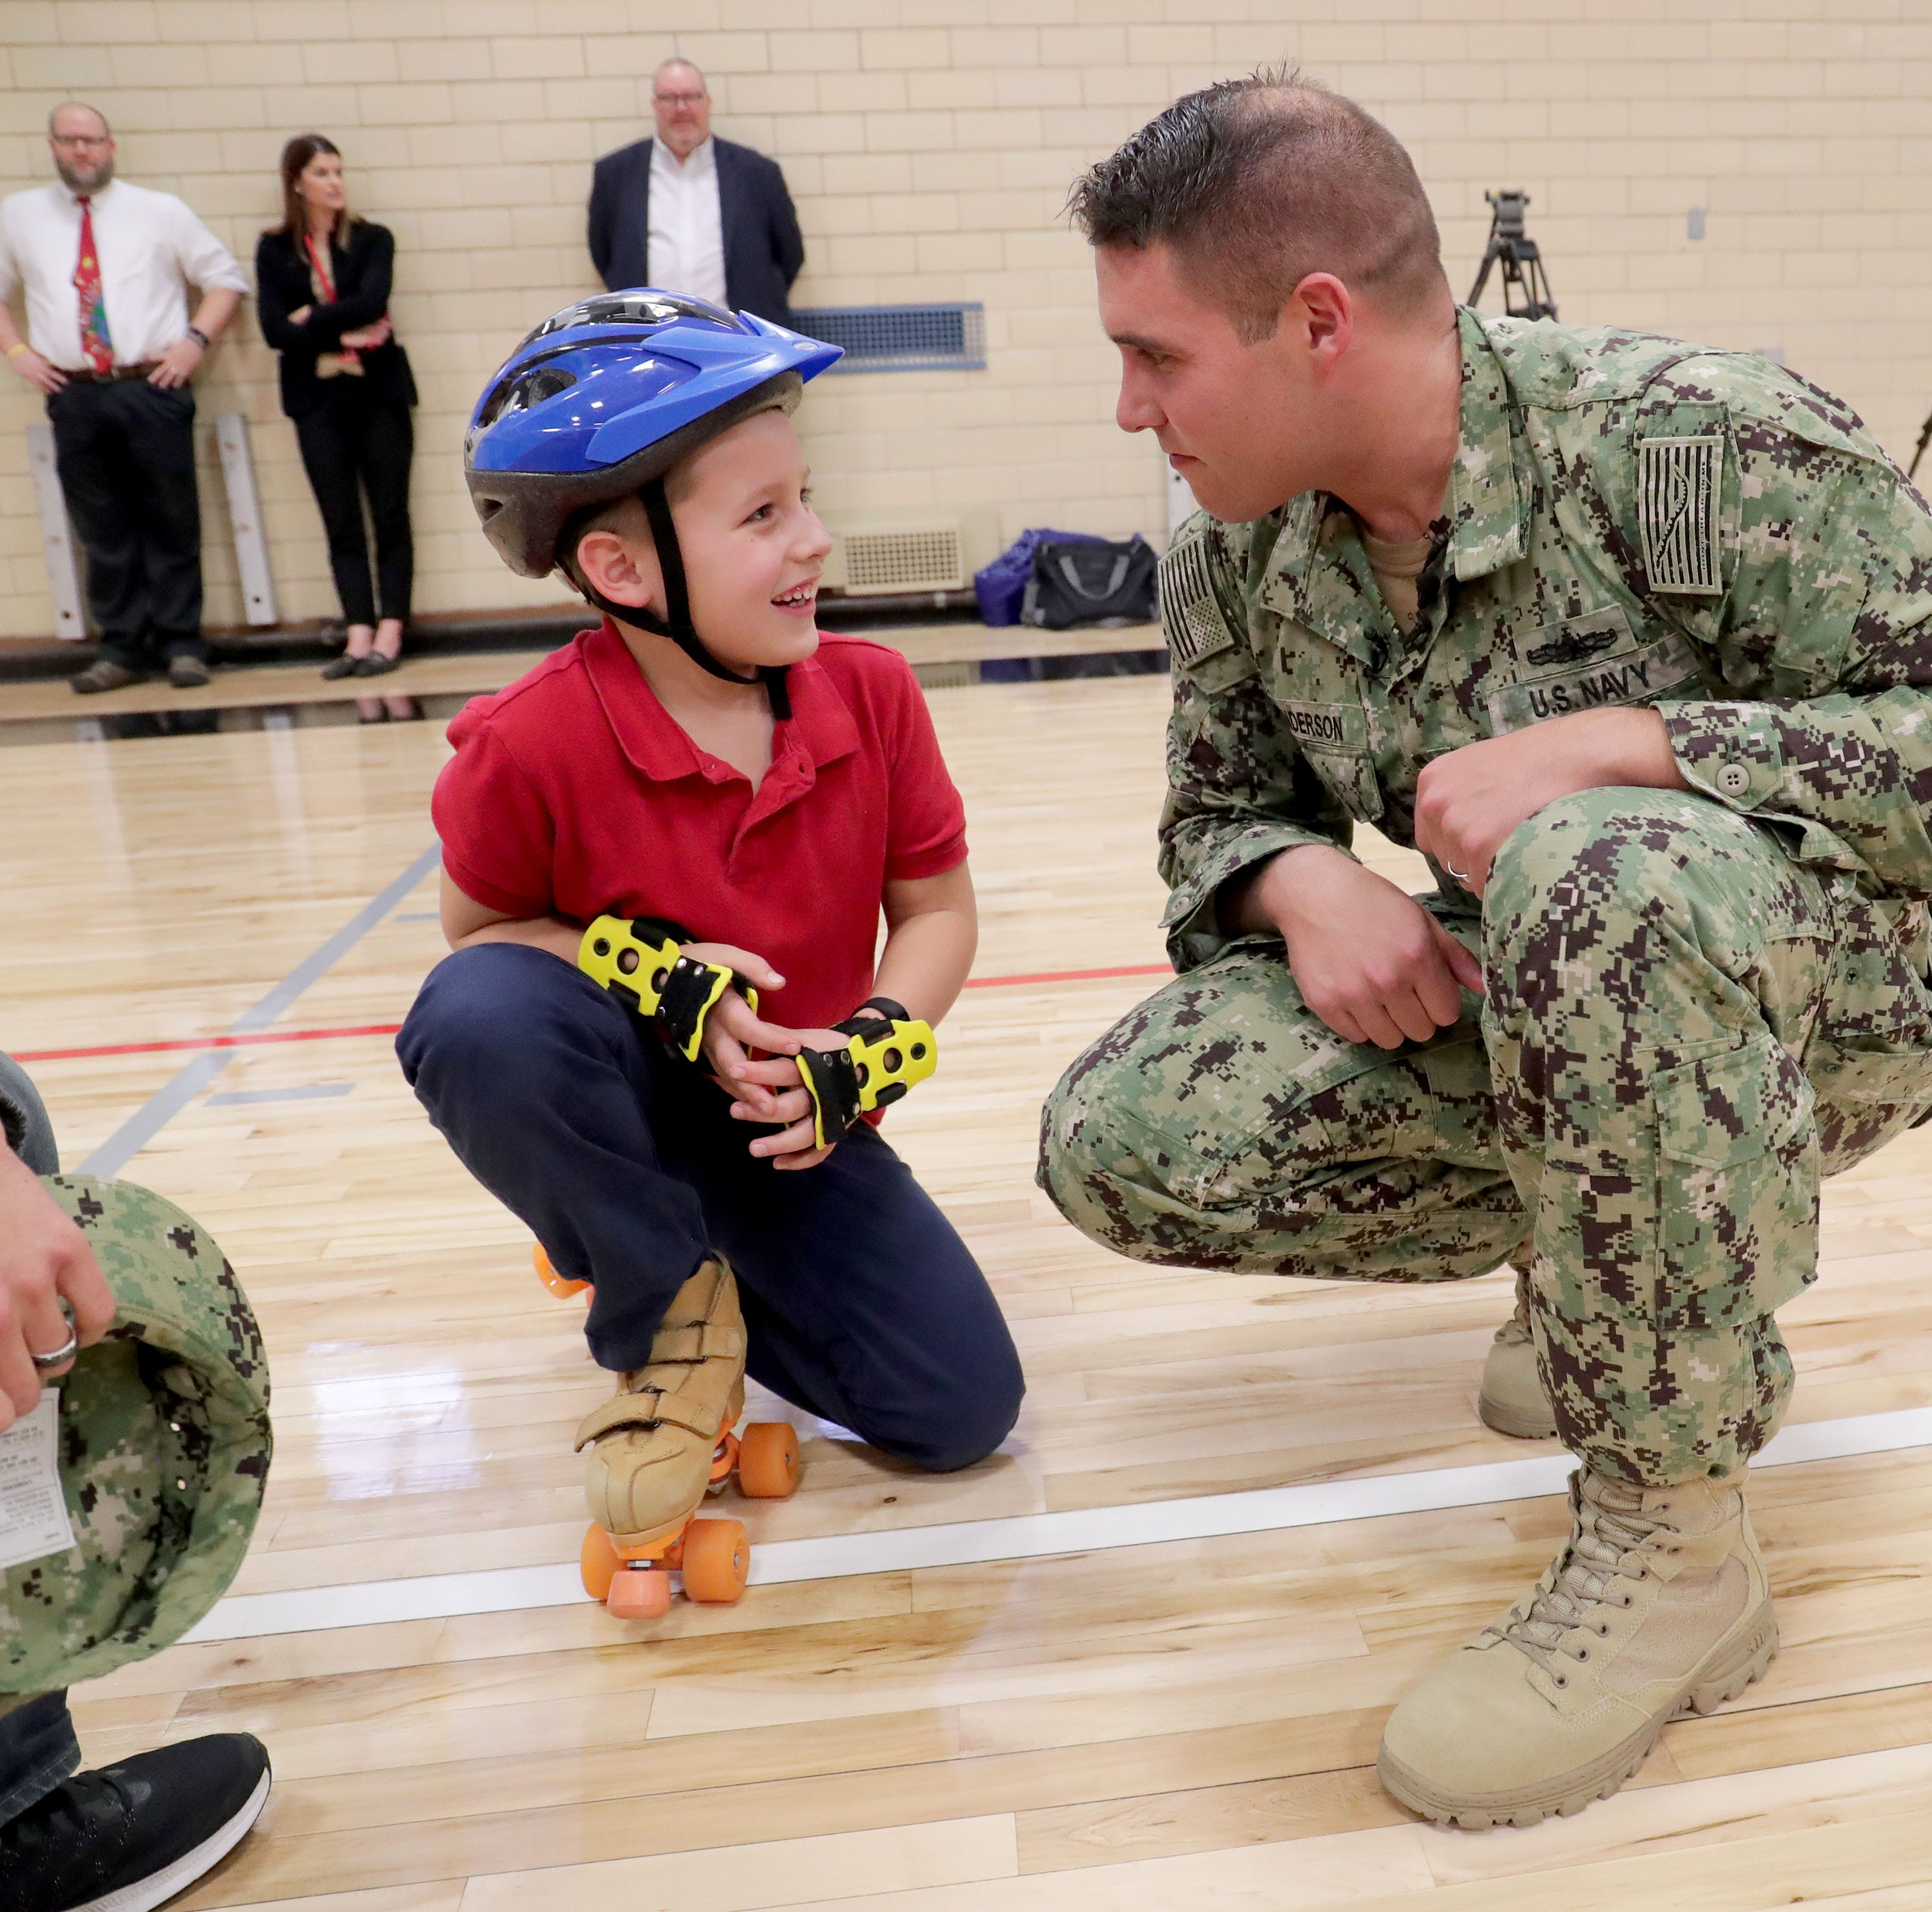 Apart for almost two years, Navy dad surprises 7-year-old son during gym class